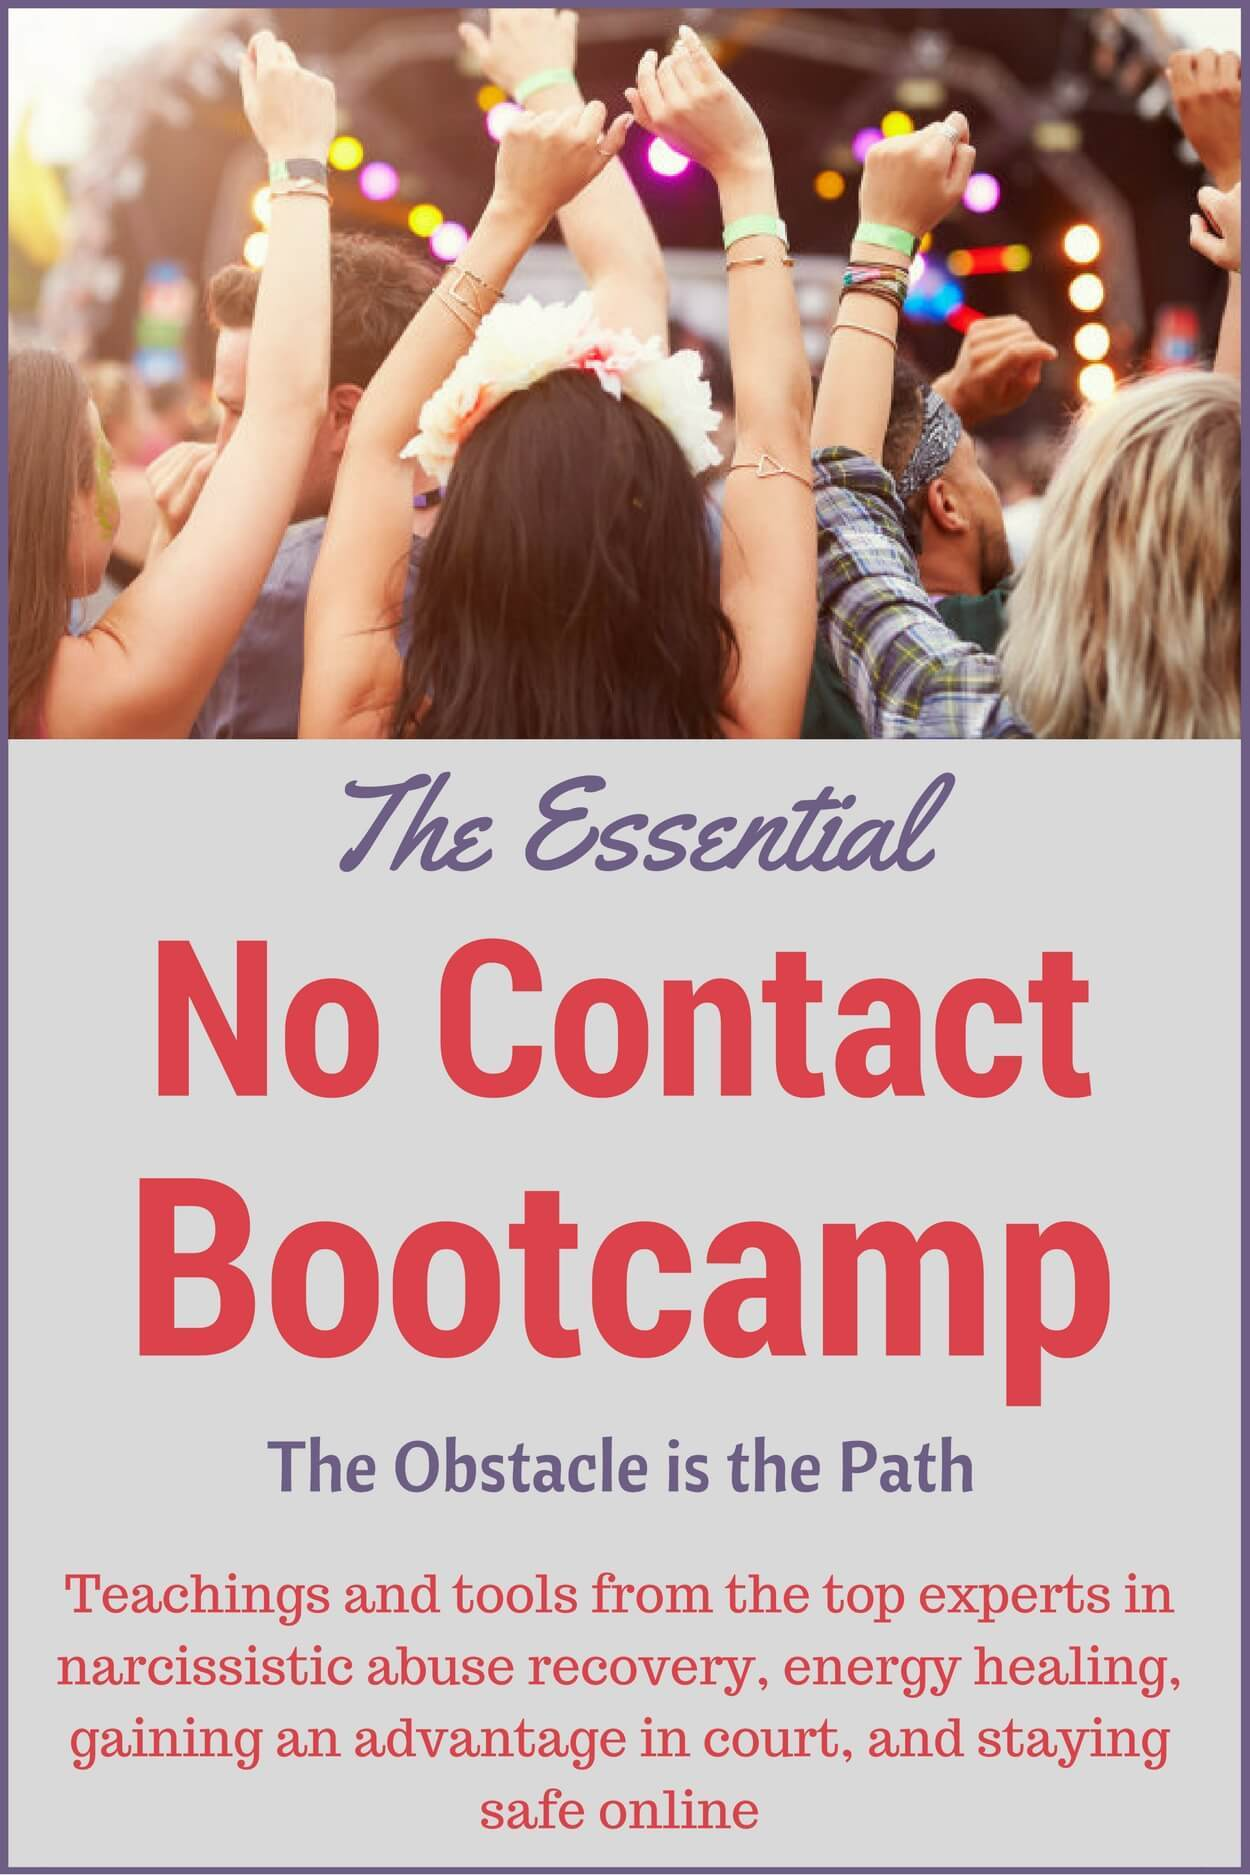 The Essential No Contact Bootcamp (3) - Kim Saeed